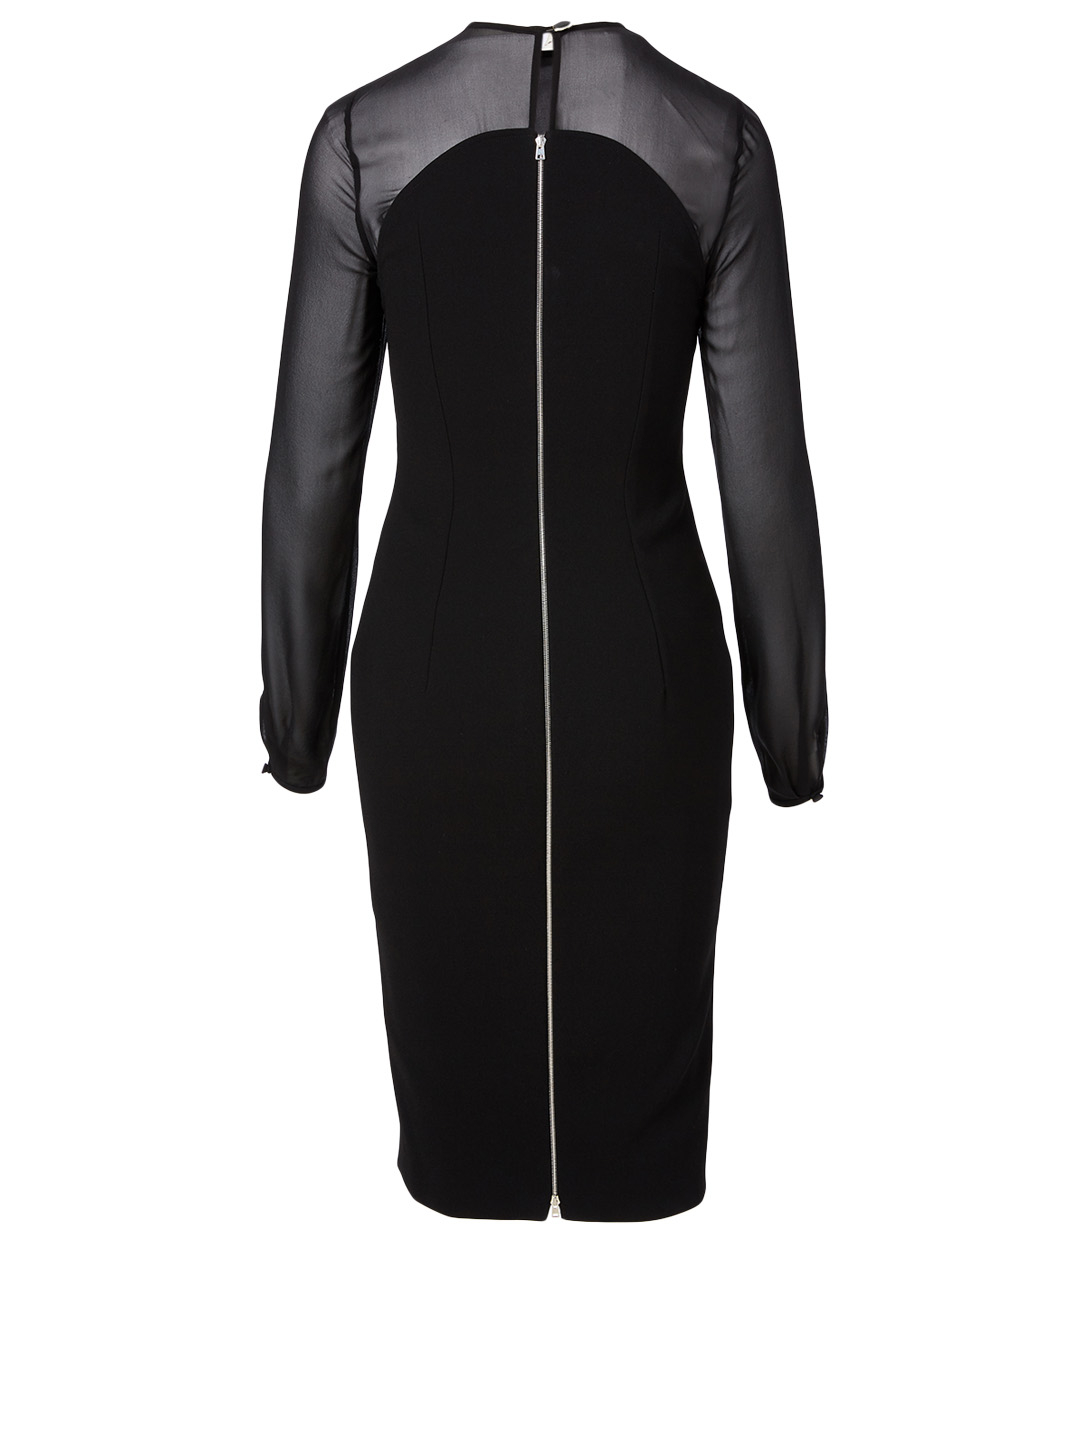 VICTORIA BECKHAM Long-Sleeve Fitted Dress Women's Black